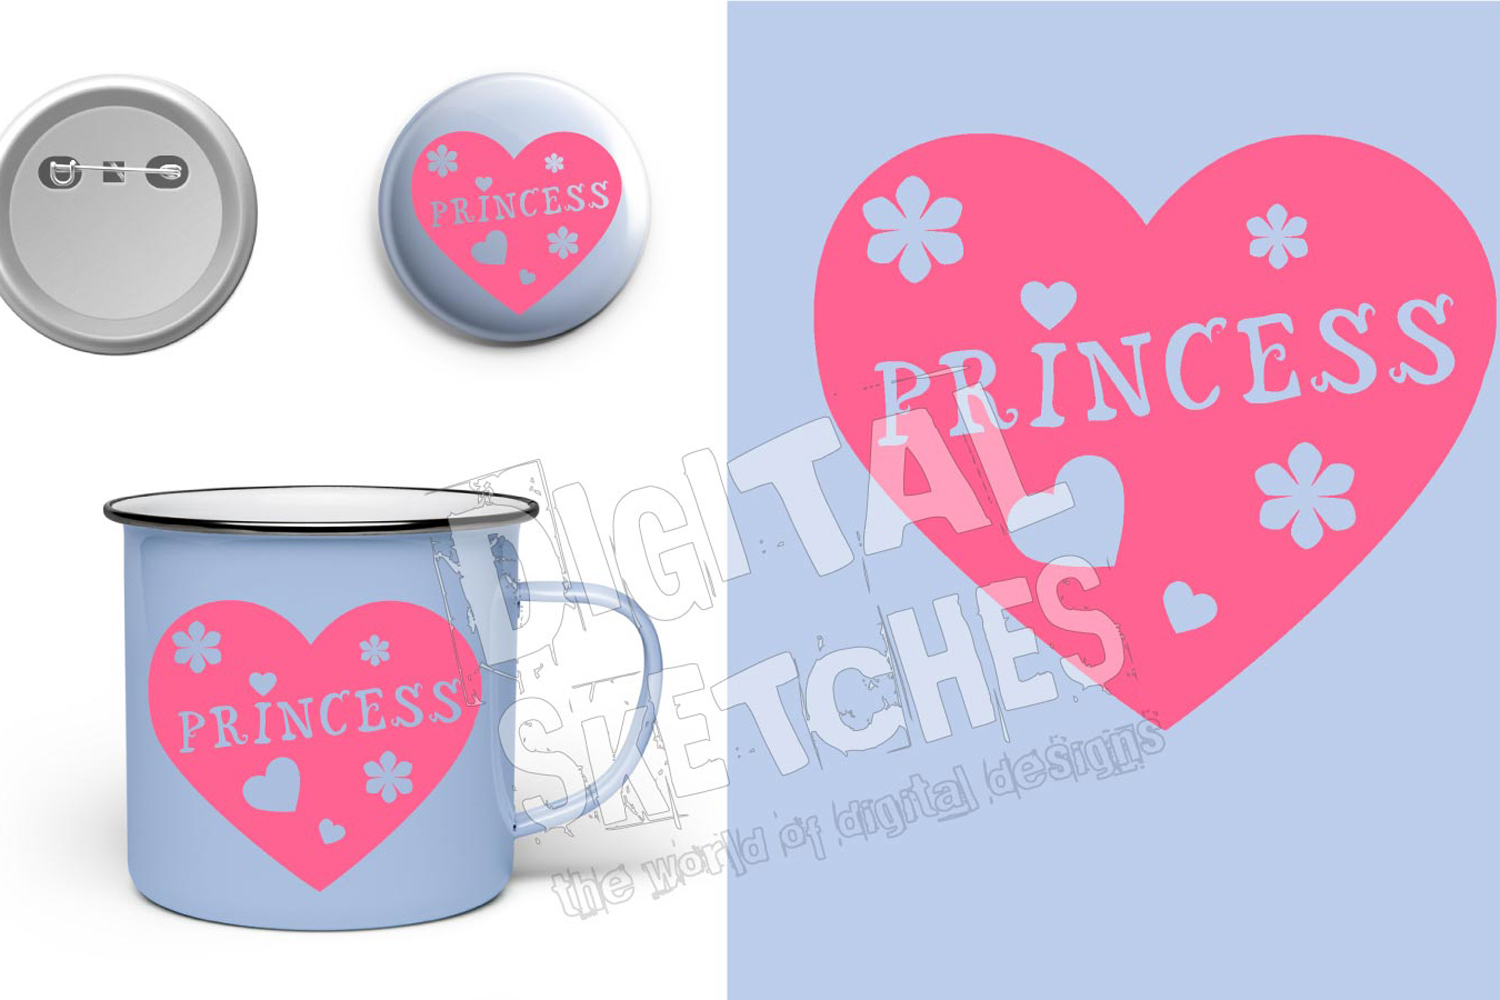 Princess Flower Heart Cut File Vector Graphics example image 1